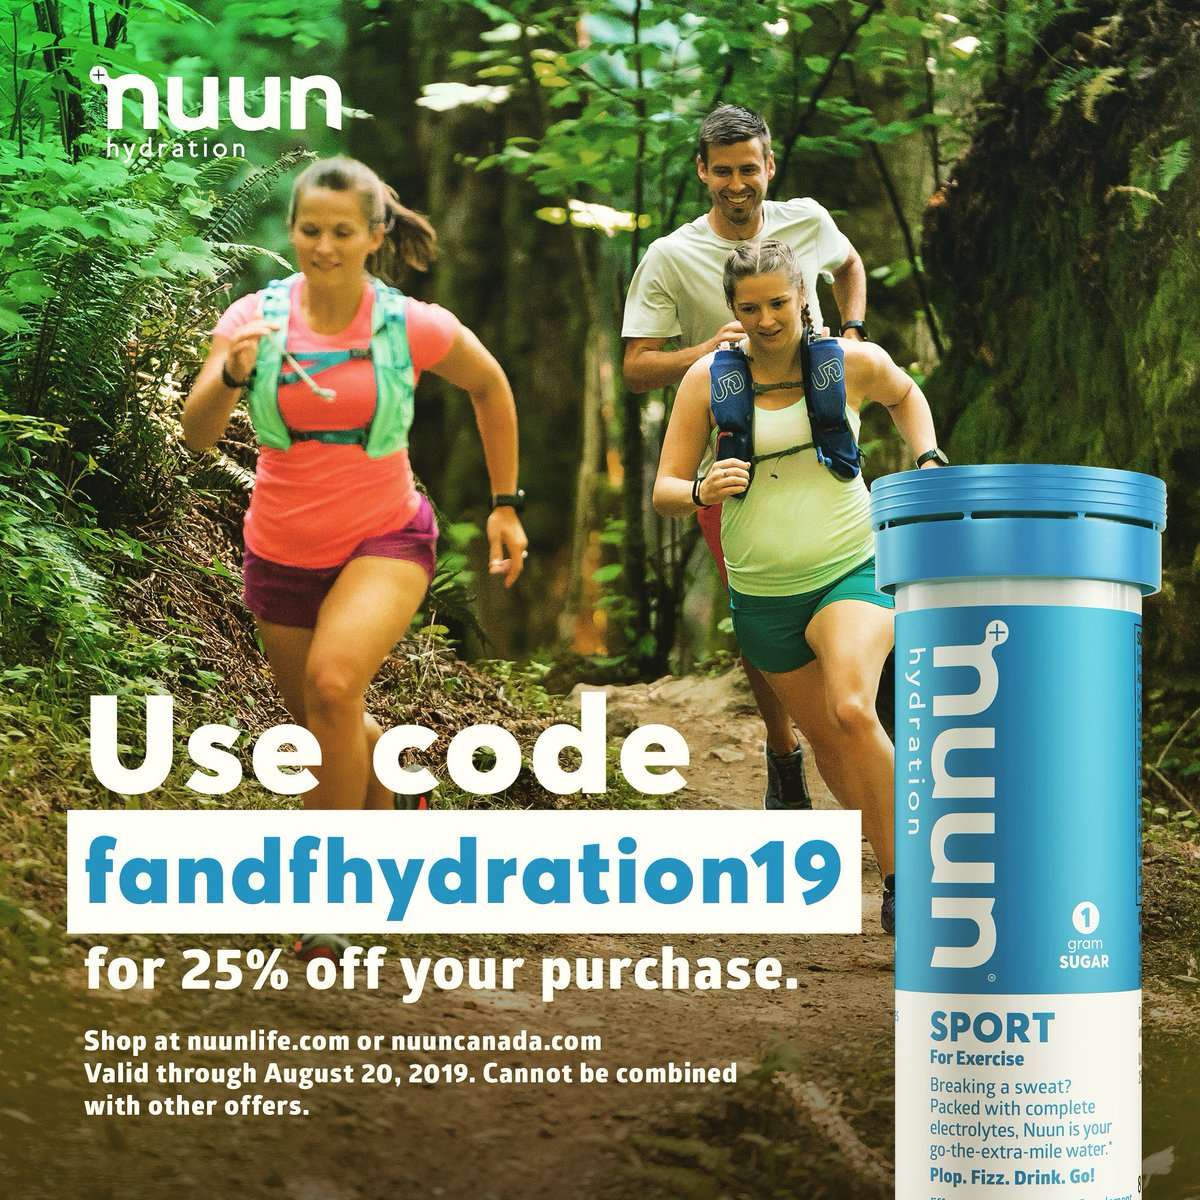 Wanna stay hydrated in the tastiest way?!   Try @nuunhydration now with code fandfhydration19 between now and Aug 20 for 20% off your purchase on their website!! #nuunlife #nuunlove #teamnuun #nuunbassador #nuunbassador2019 #WIrunner<br>http://pic.twitter.com/62azdotntC